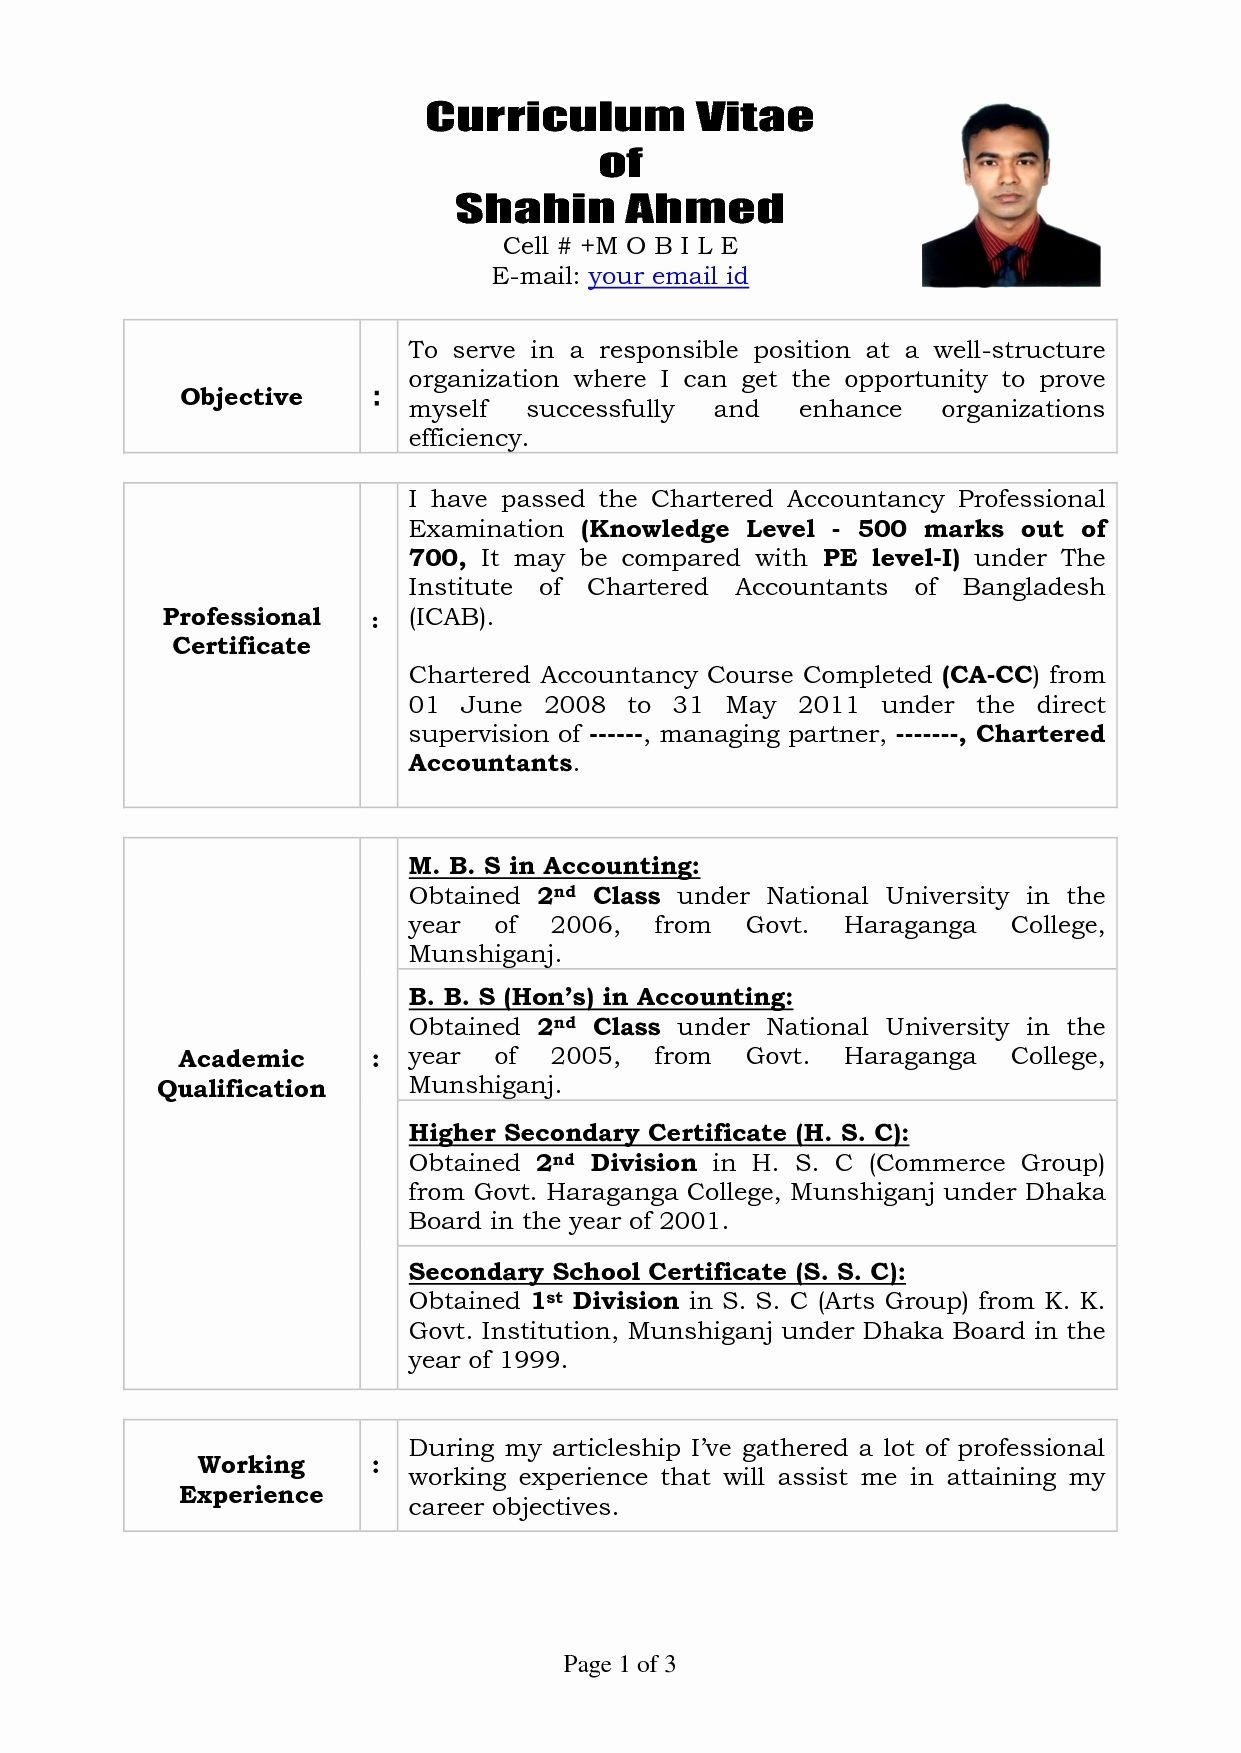 12 Unique Sle Resume For Articleship Resume Sle Ideas Resume Sle